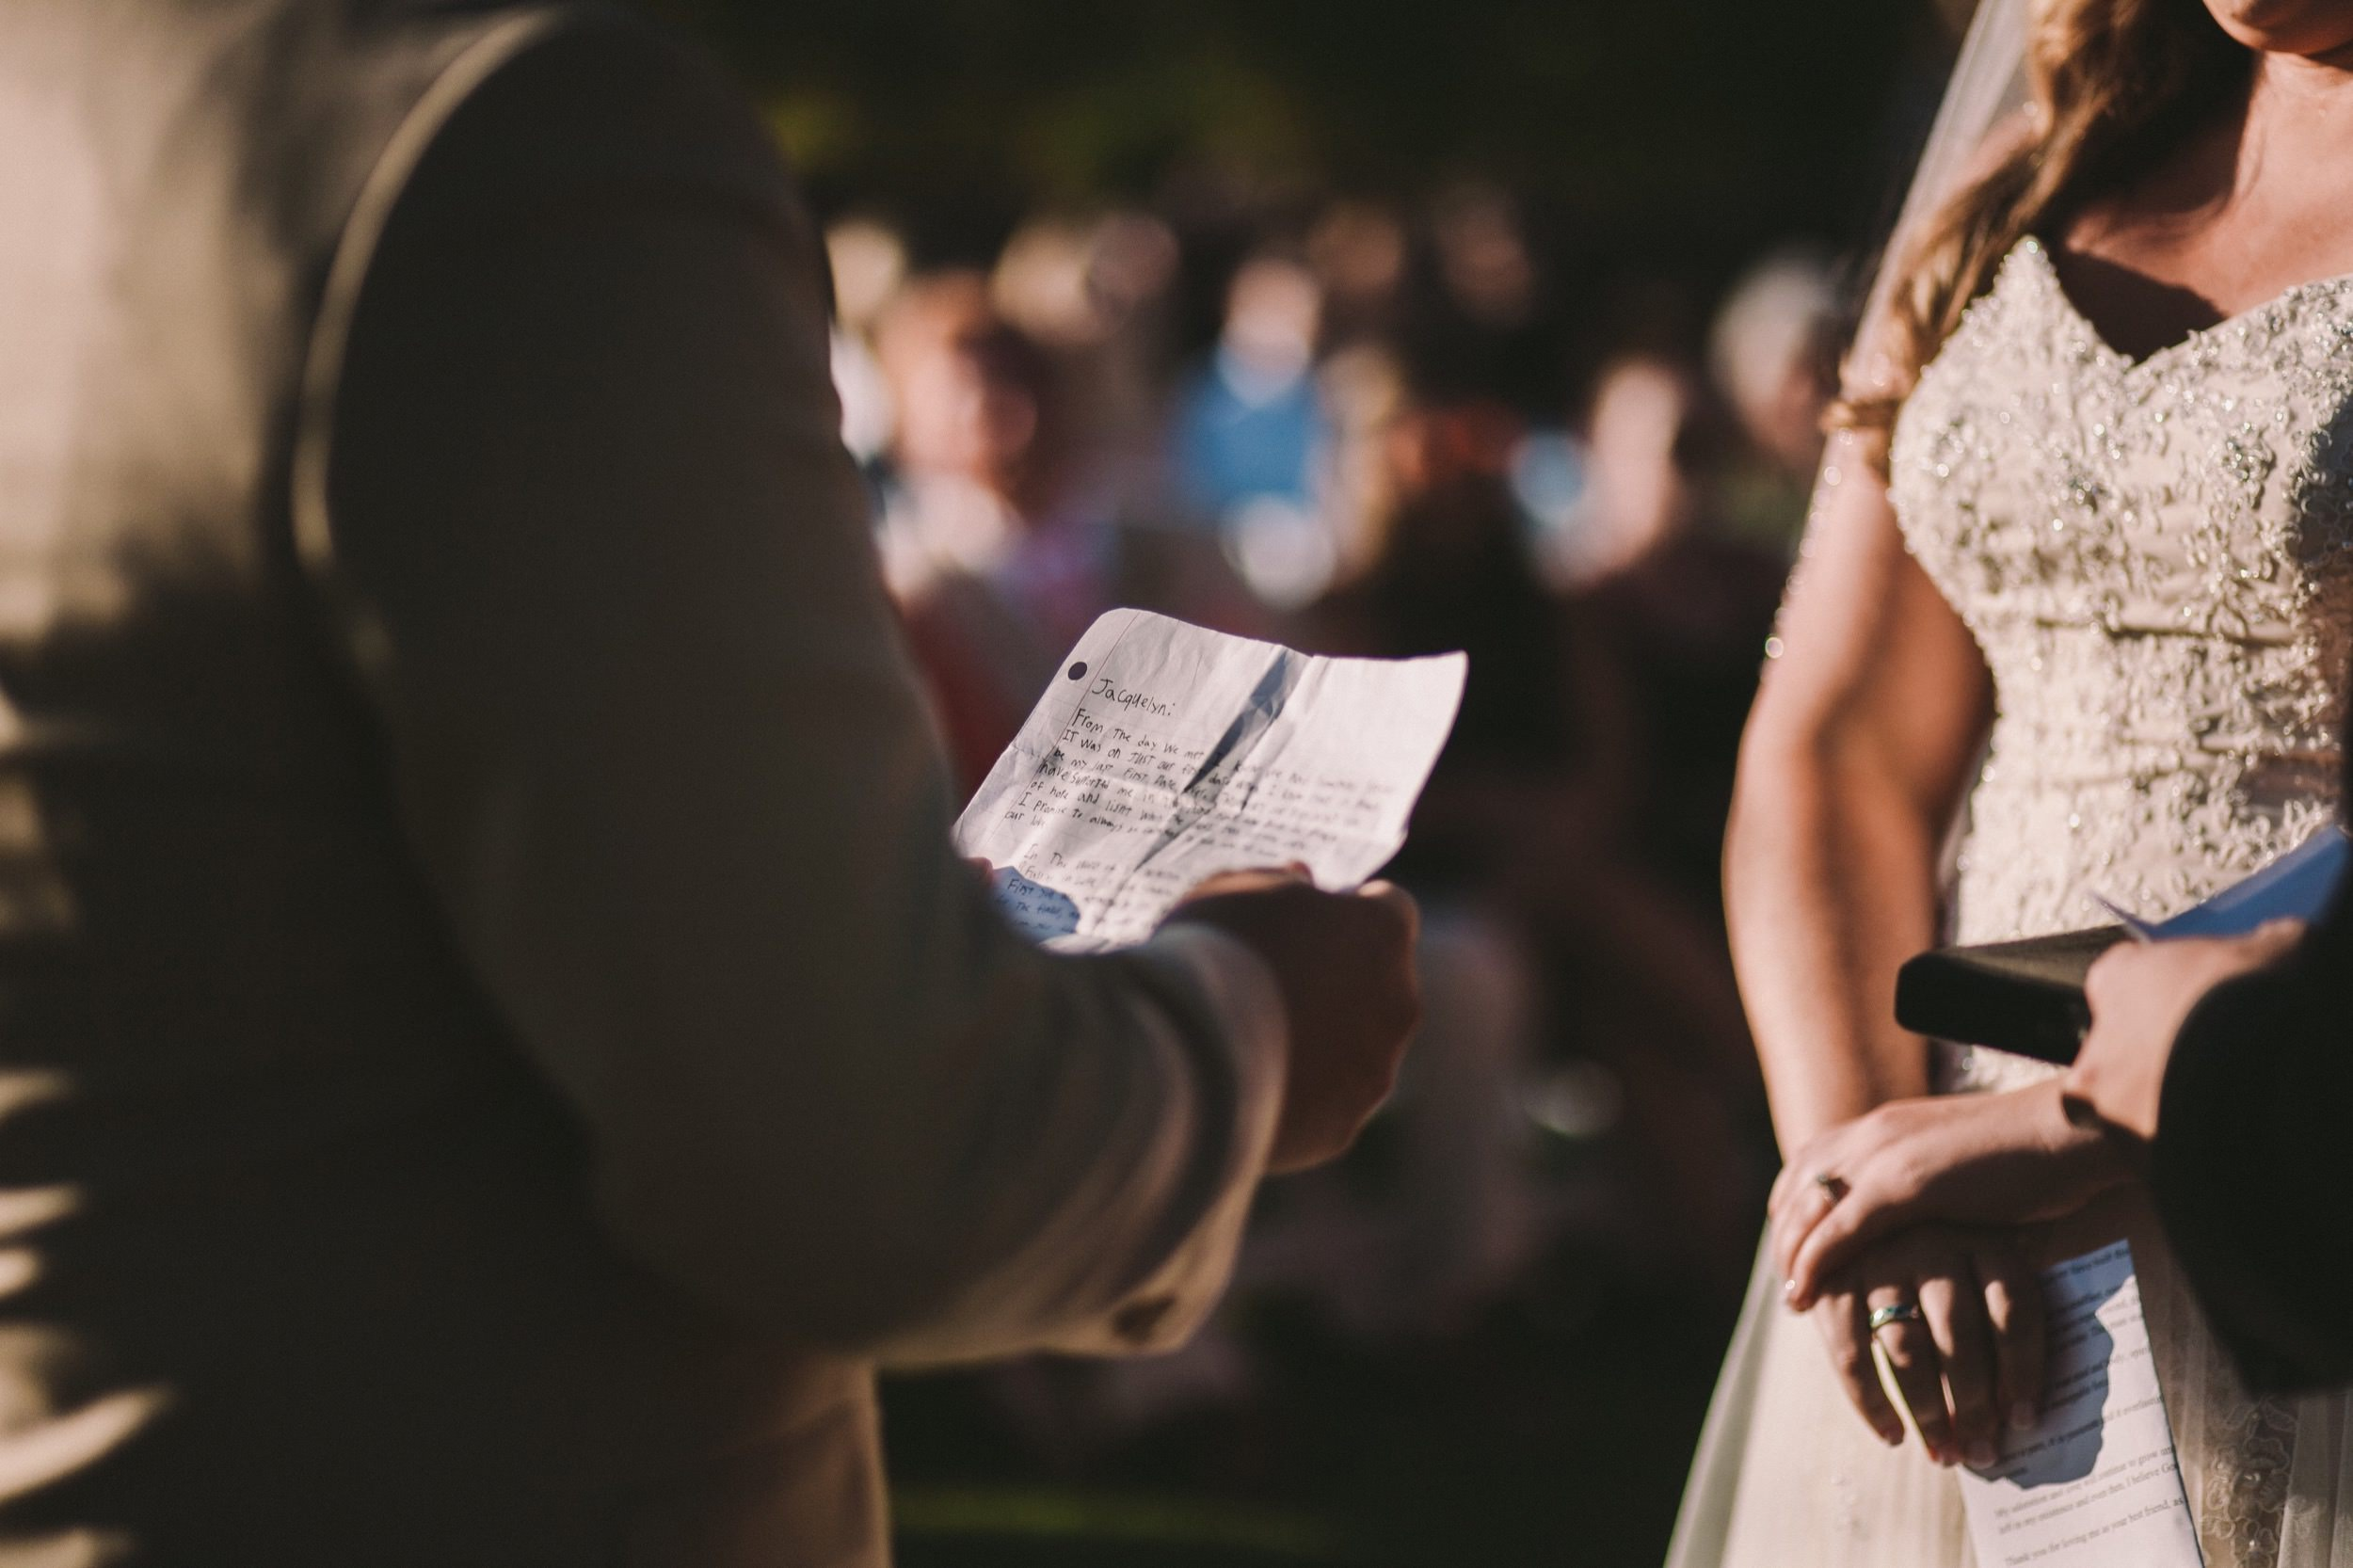 Grooms Personal Hand Written Wedding Vows Being Read During Outdoor Ceremony